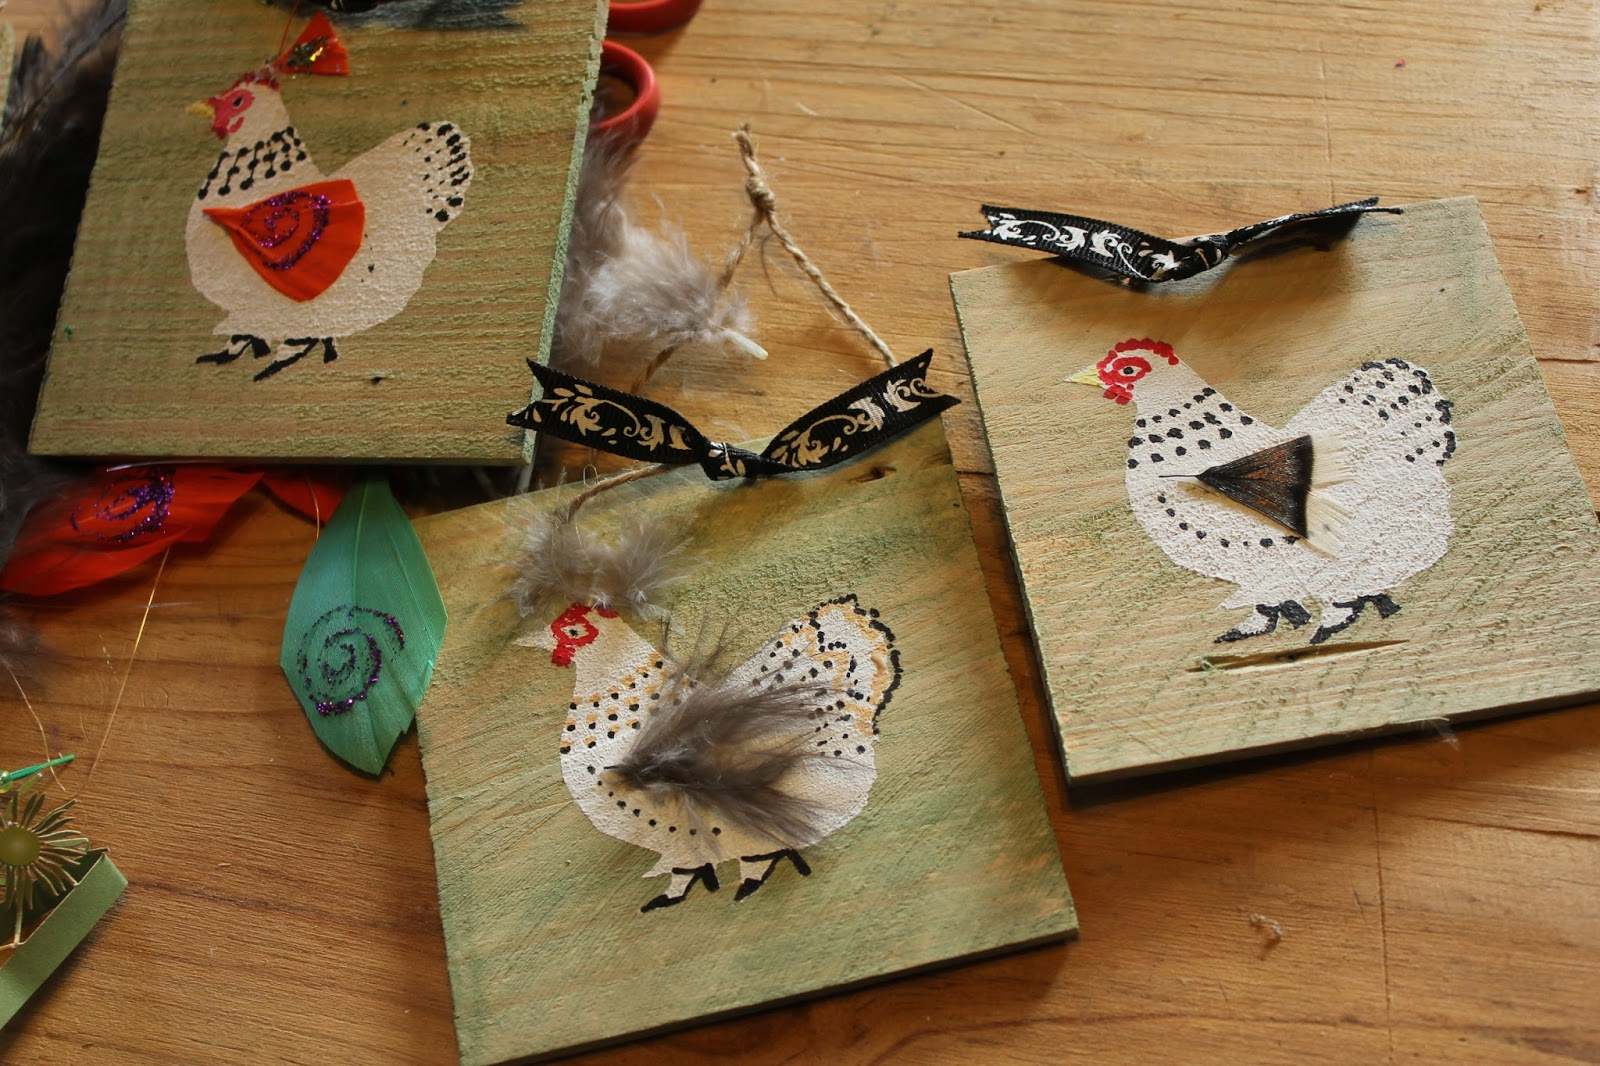 making greetings cards from scraps and decoupage